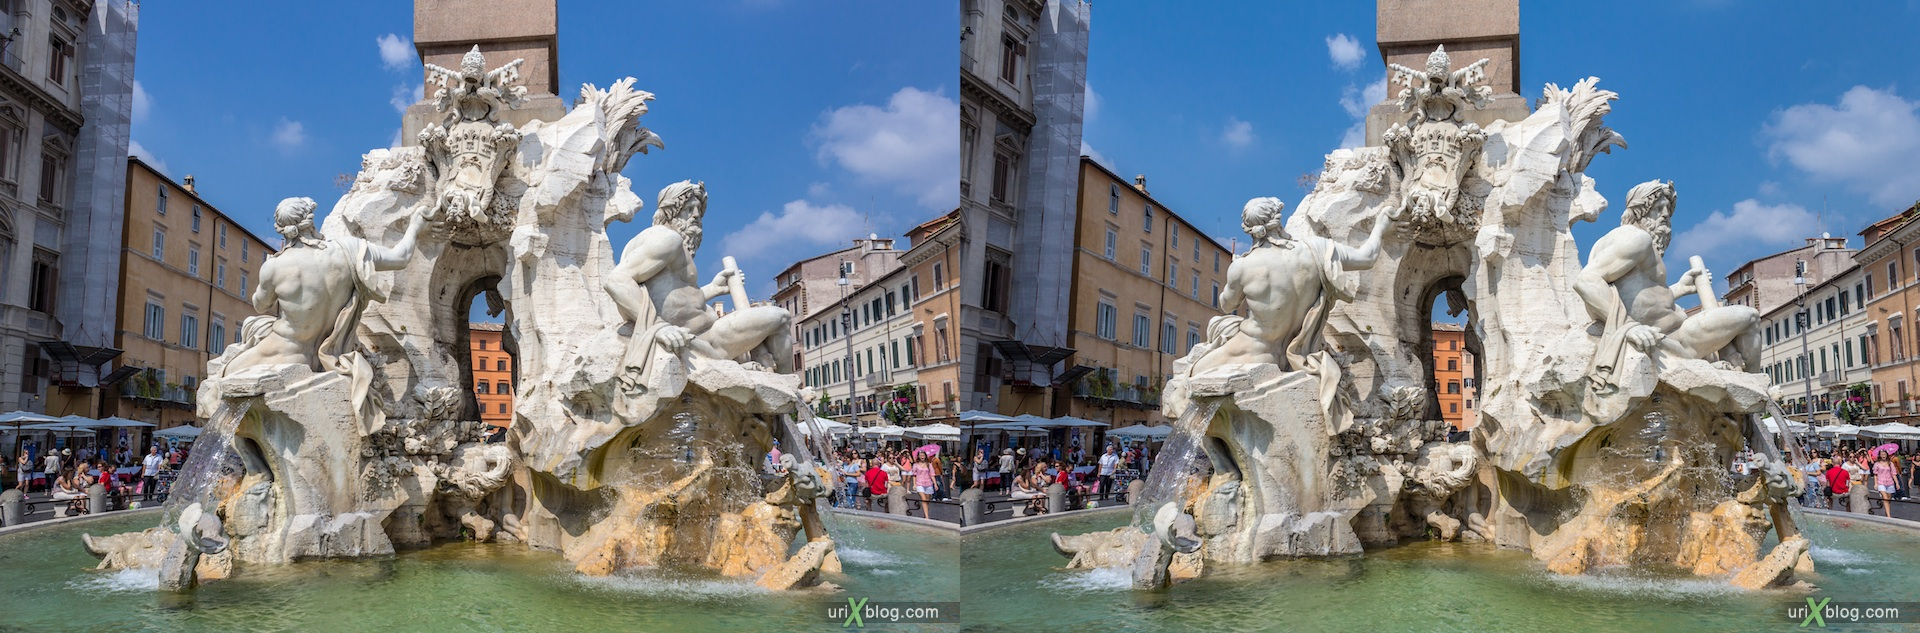 2012, fountain of the Four Rivers, Piazza Navona, Rome, Italy, 3D, stereo pair, cross-eyed, crossview, cross view stereo pair